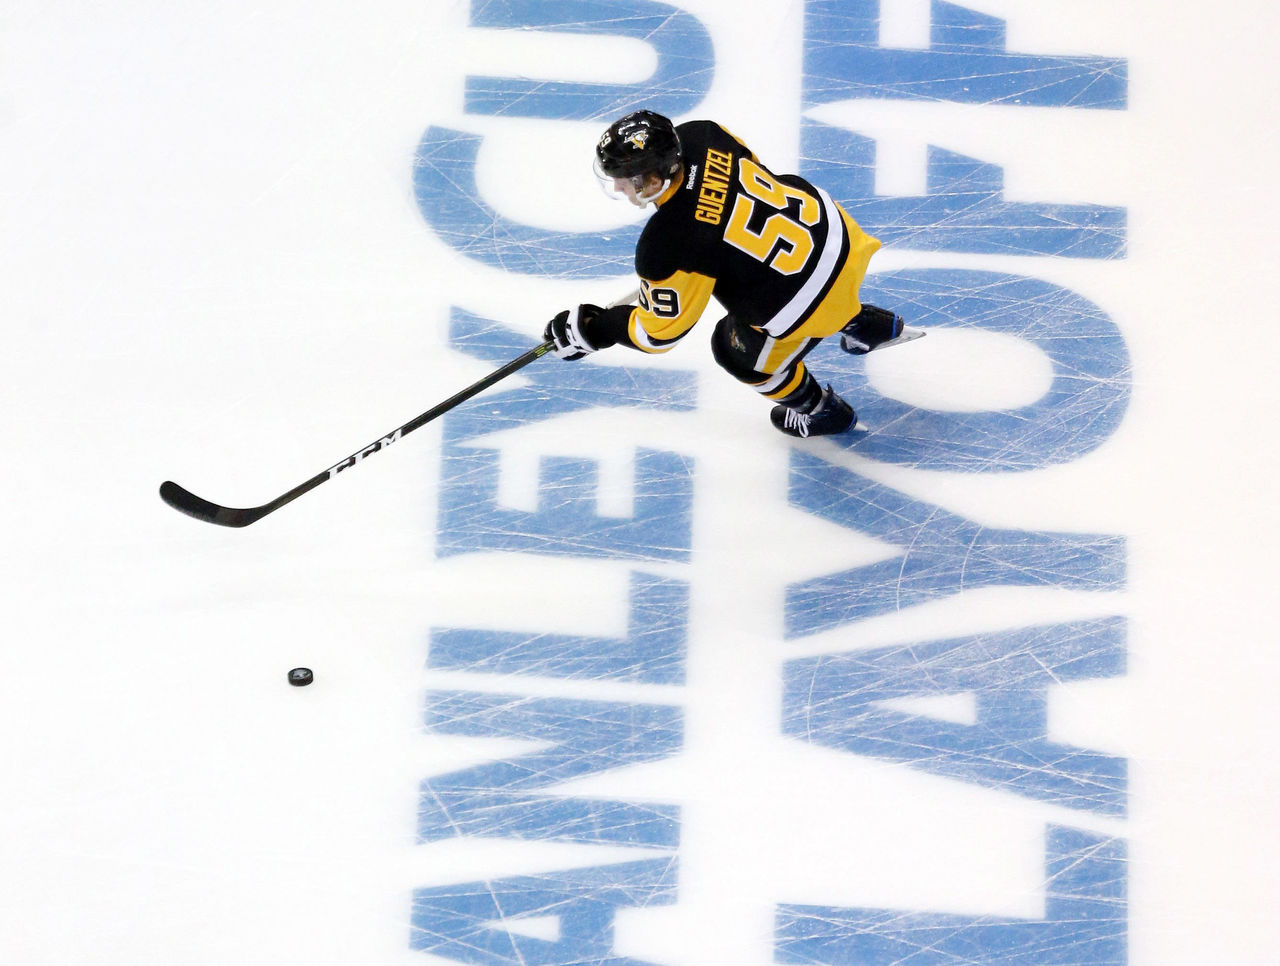 Cropped 2017 04 12t232857z 713325797 nocid rtrmadp 3 nhl stanley cup playoffs columbus blue jackets at pittsburgh penguins